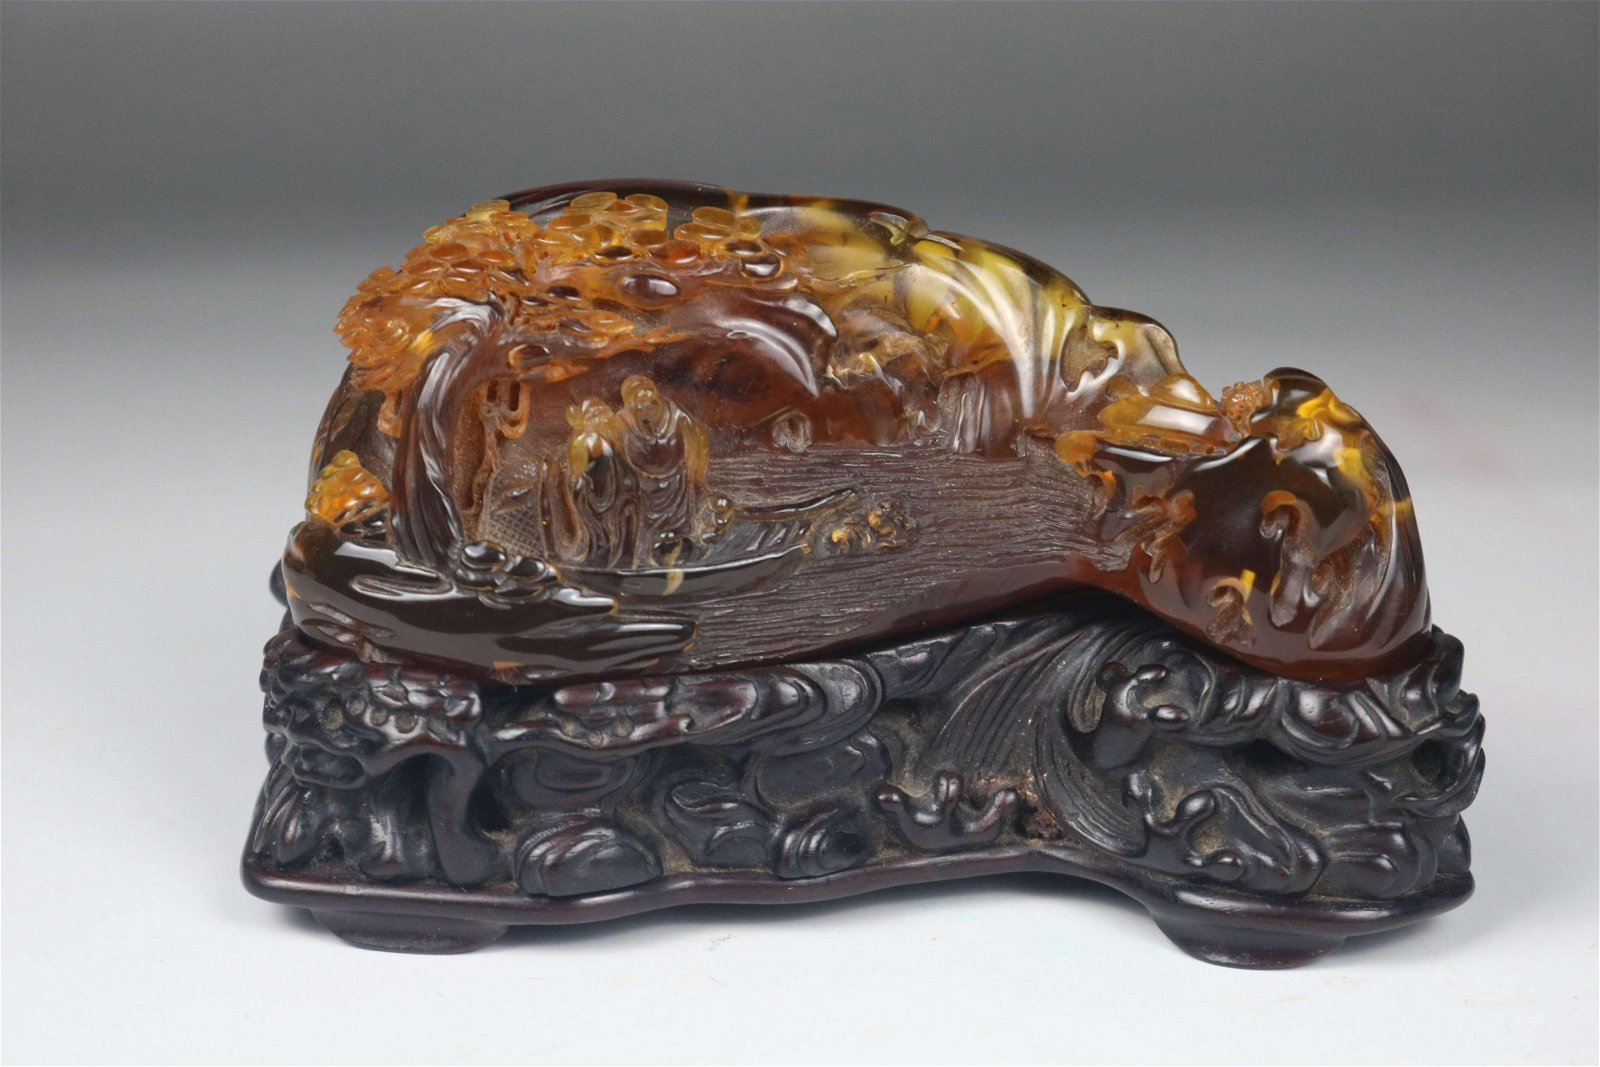 A CHINESE AMBER BOULDER. QING DYNASTY